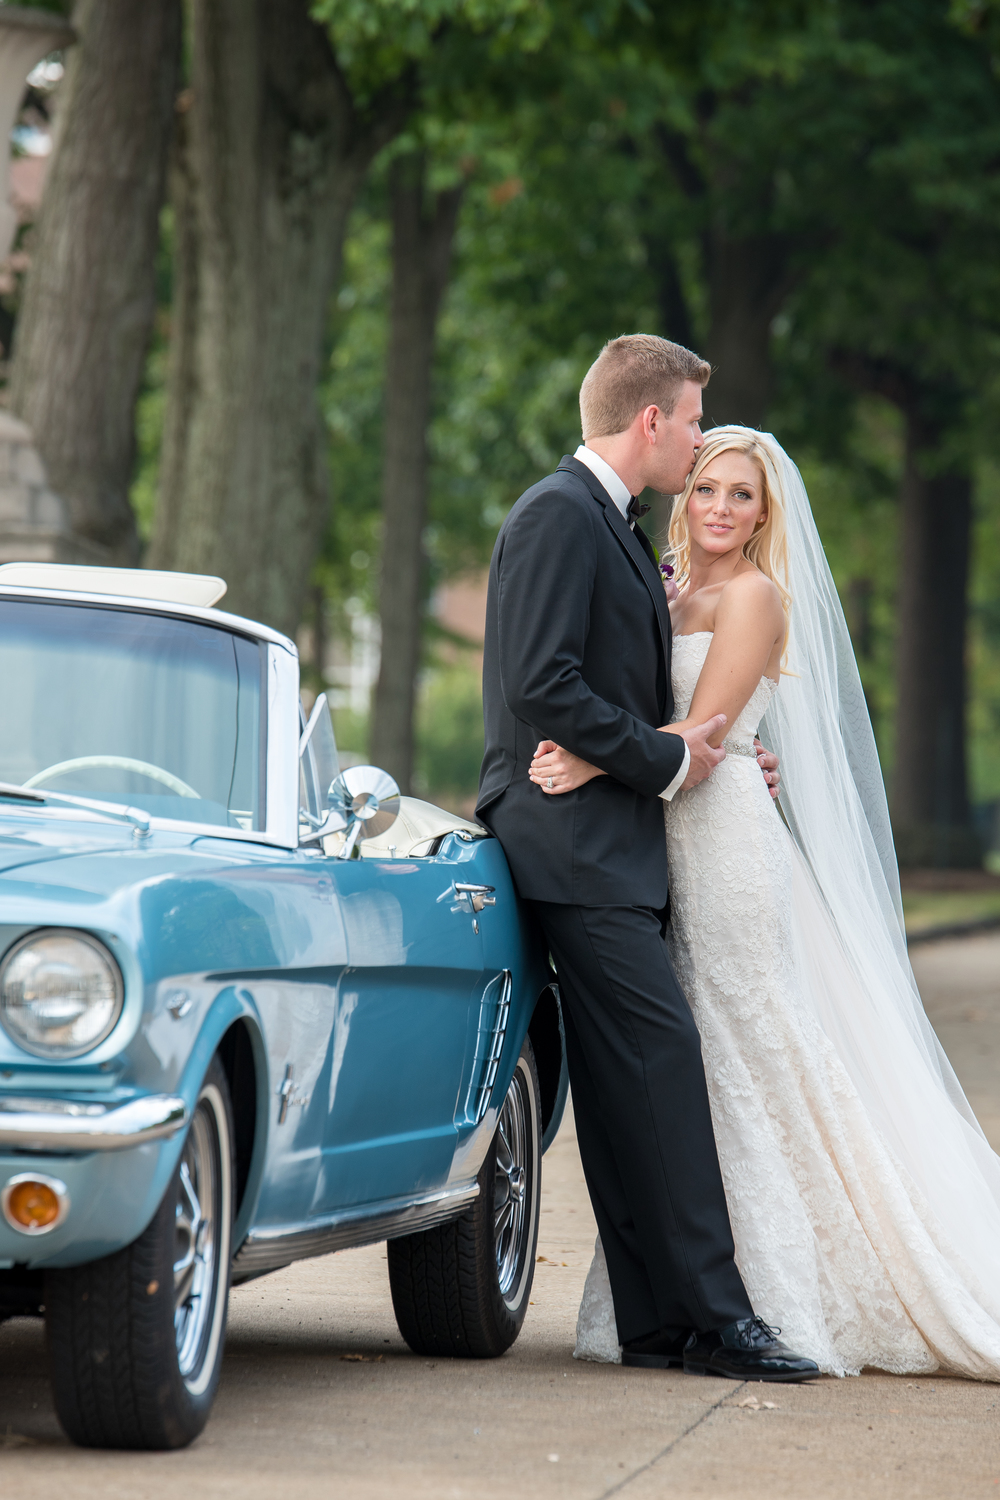 whitney_zunic_ohio_wedding_engagement_photography_071.jpg